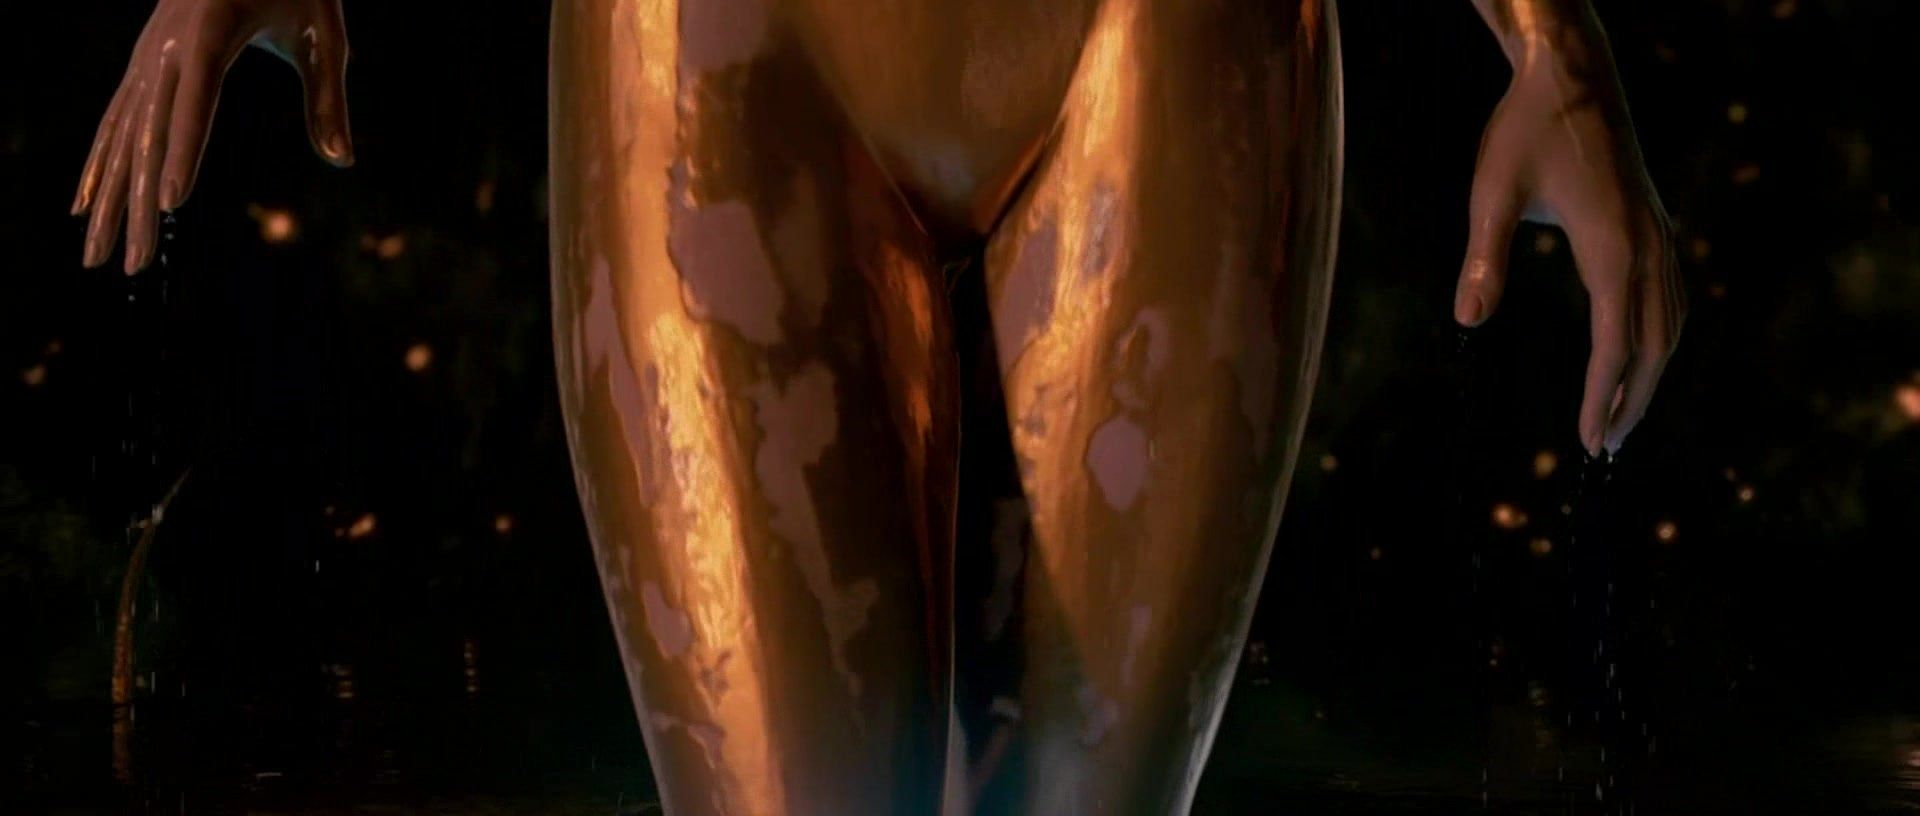 Angelina Jolie Naked Taking Lives angelina jolie beowulf naked video . photos and other